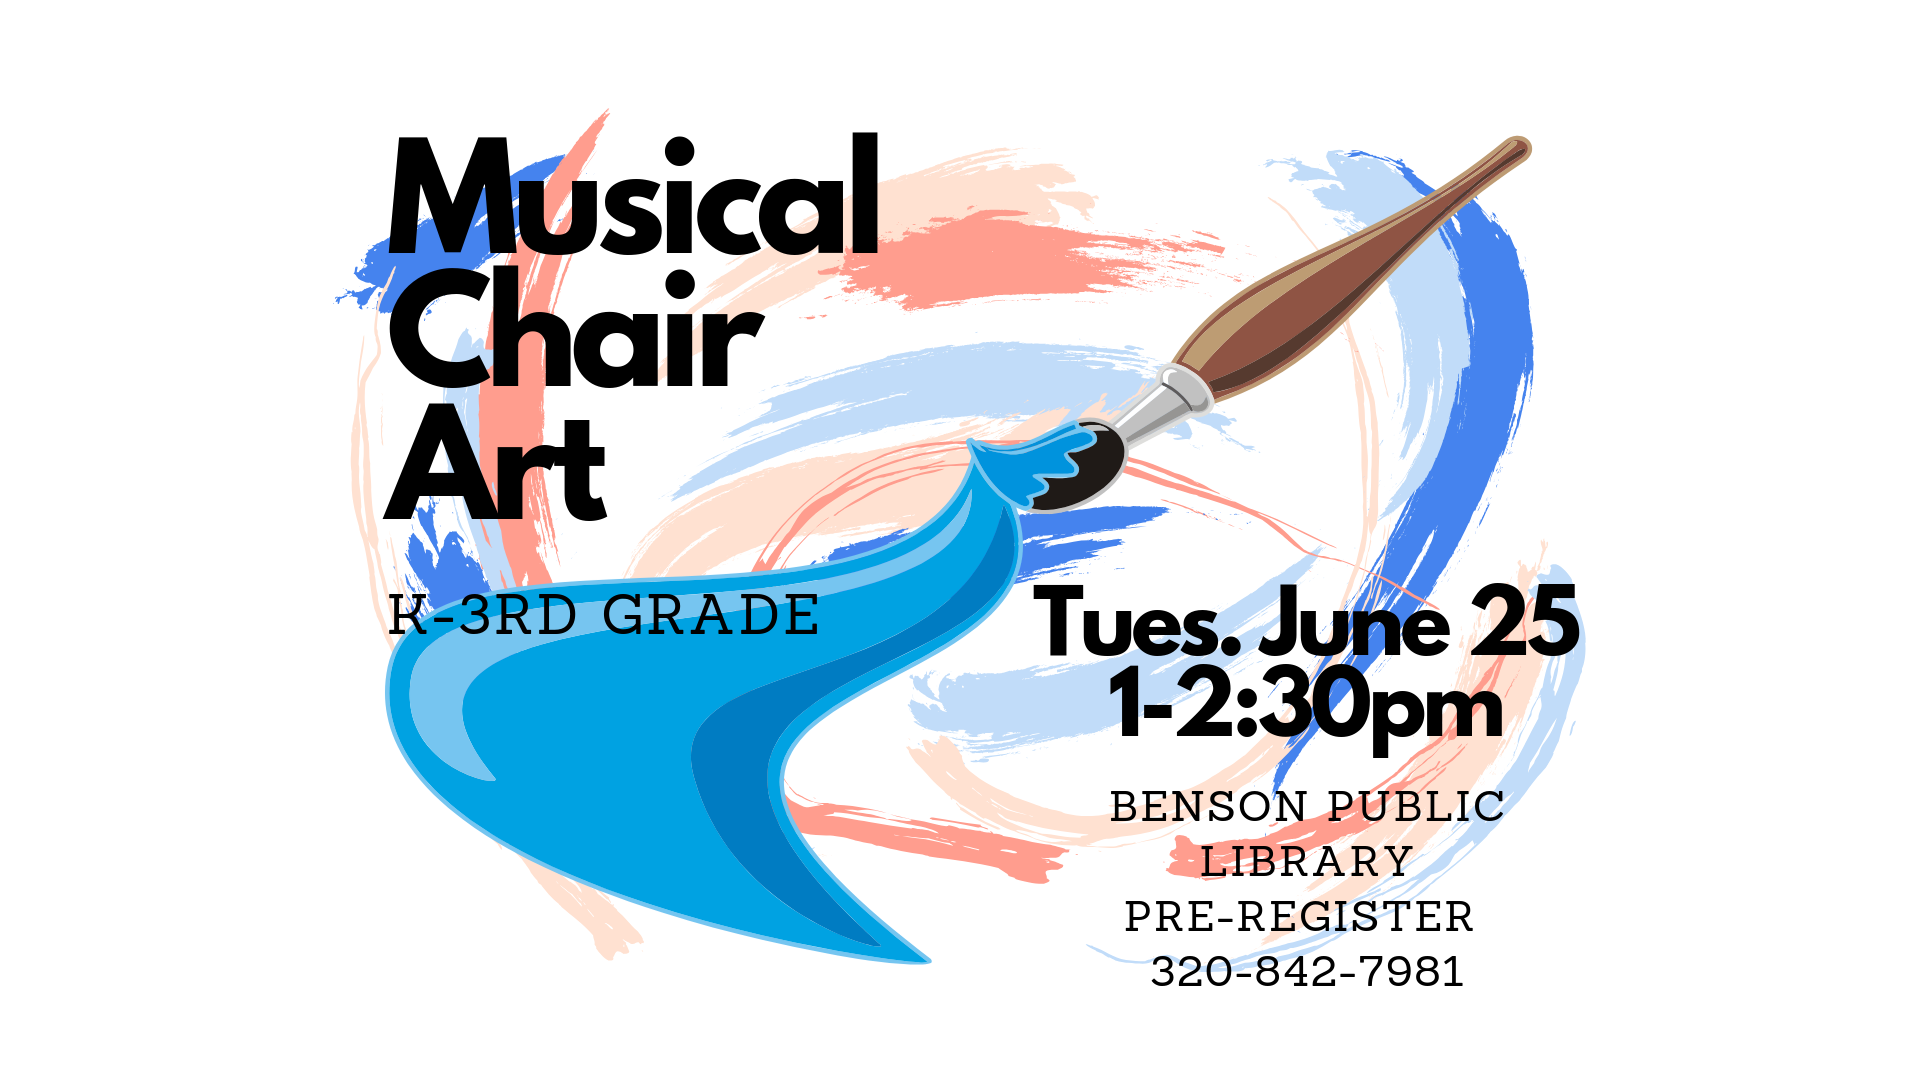 Kids going into Kindergarten through 3rd grade are welcome to join us on Tuesday, June 25 from 1-2:30 for Musical Chair Art, where they will create wonderful pieces of art while playing musical chairs. We do ask that kids pre-register just so we have enough supplies.